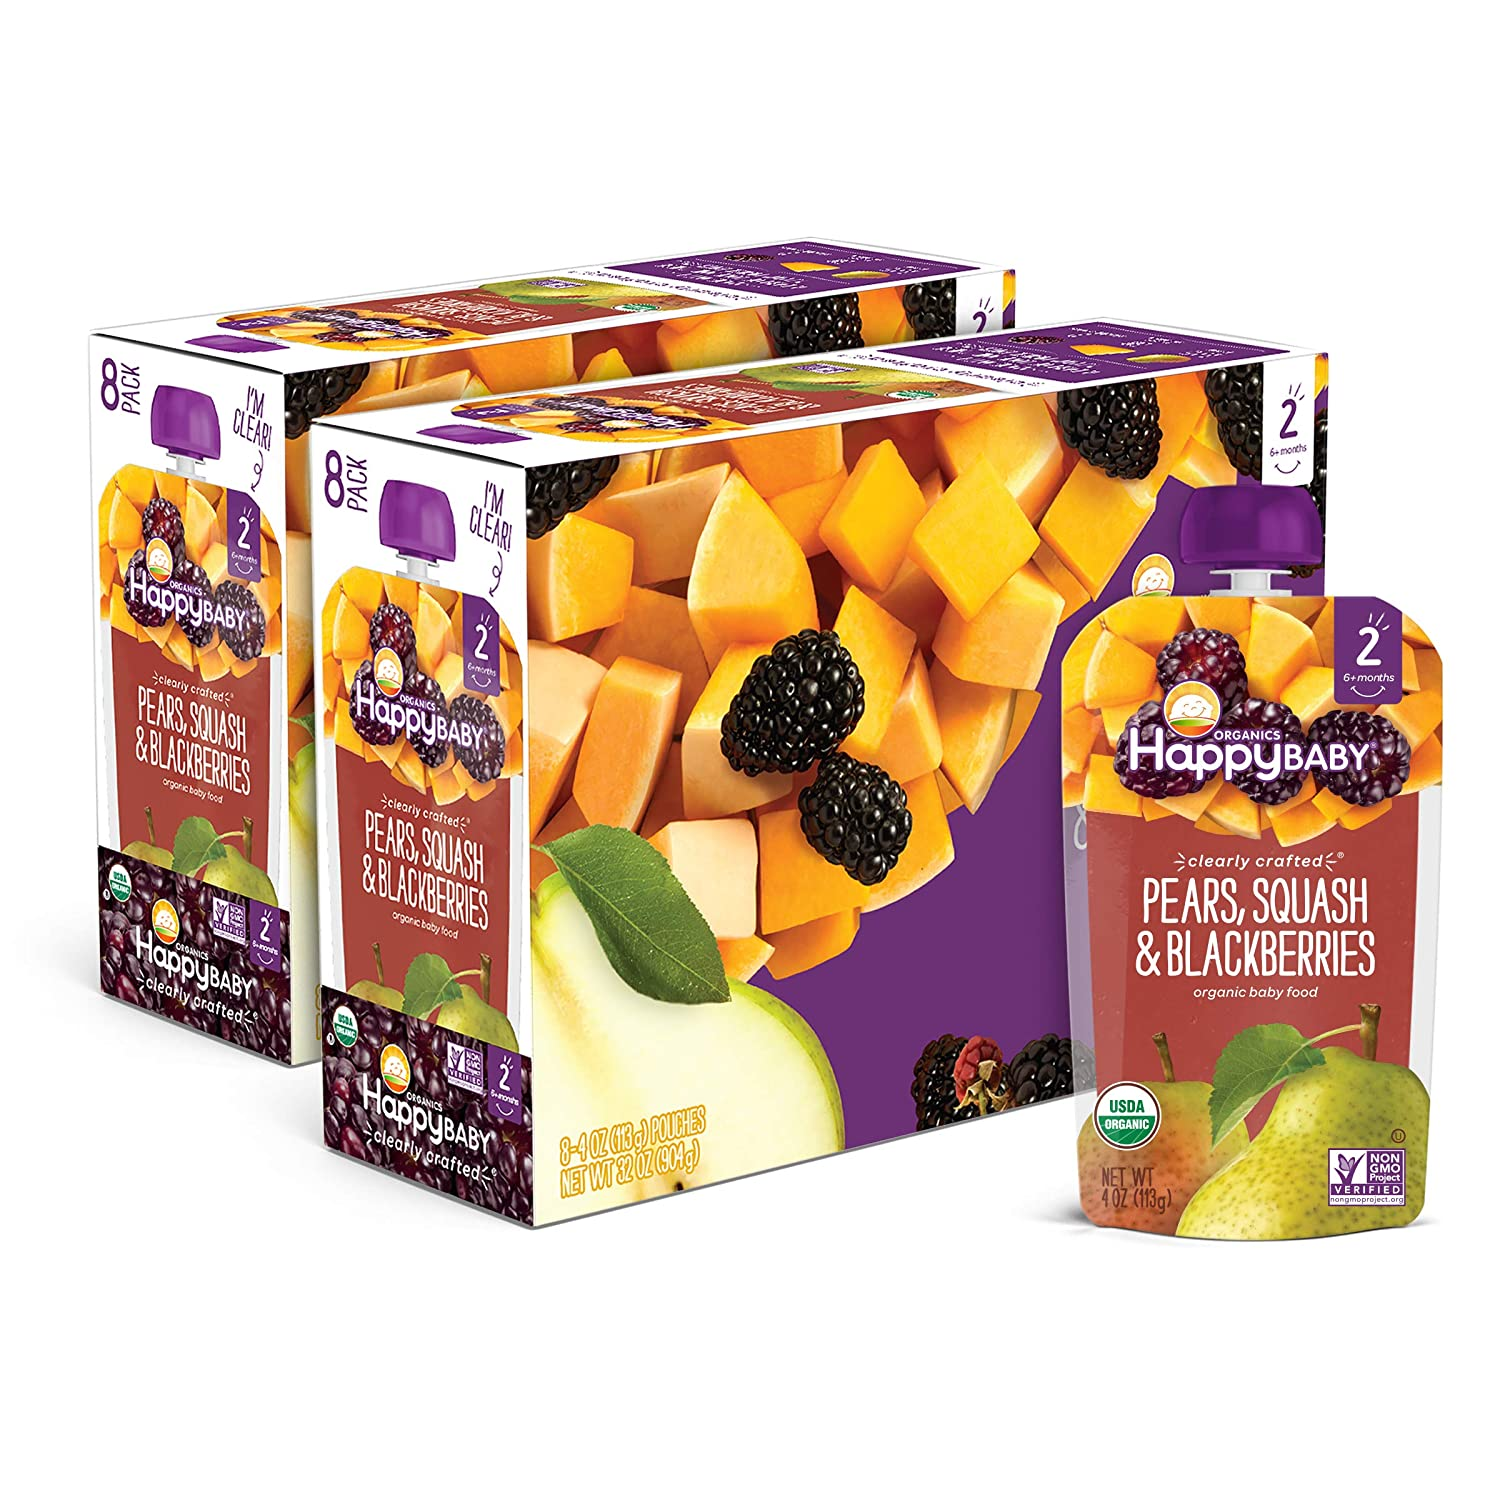 Happy Baby Organic Clearly Crafted Stage 2 Baby Food Pears, Squash & Blackberries, 4 Ounce (16 Count)